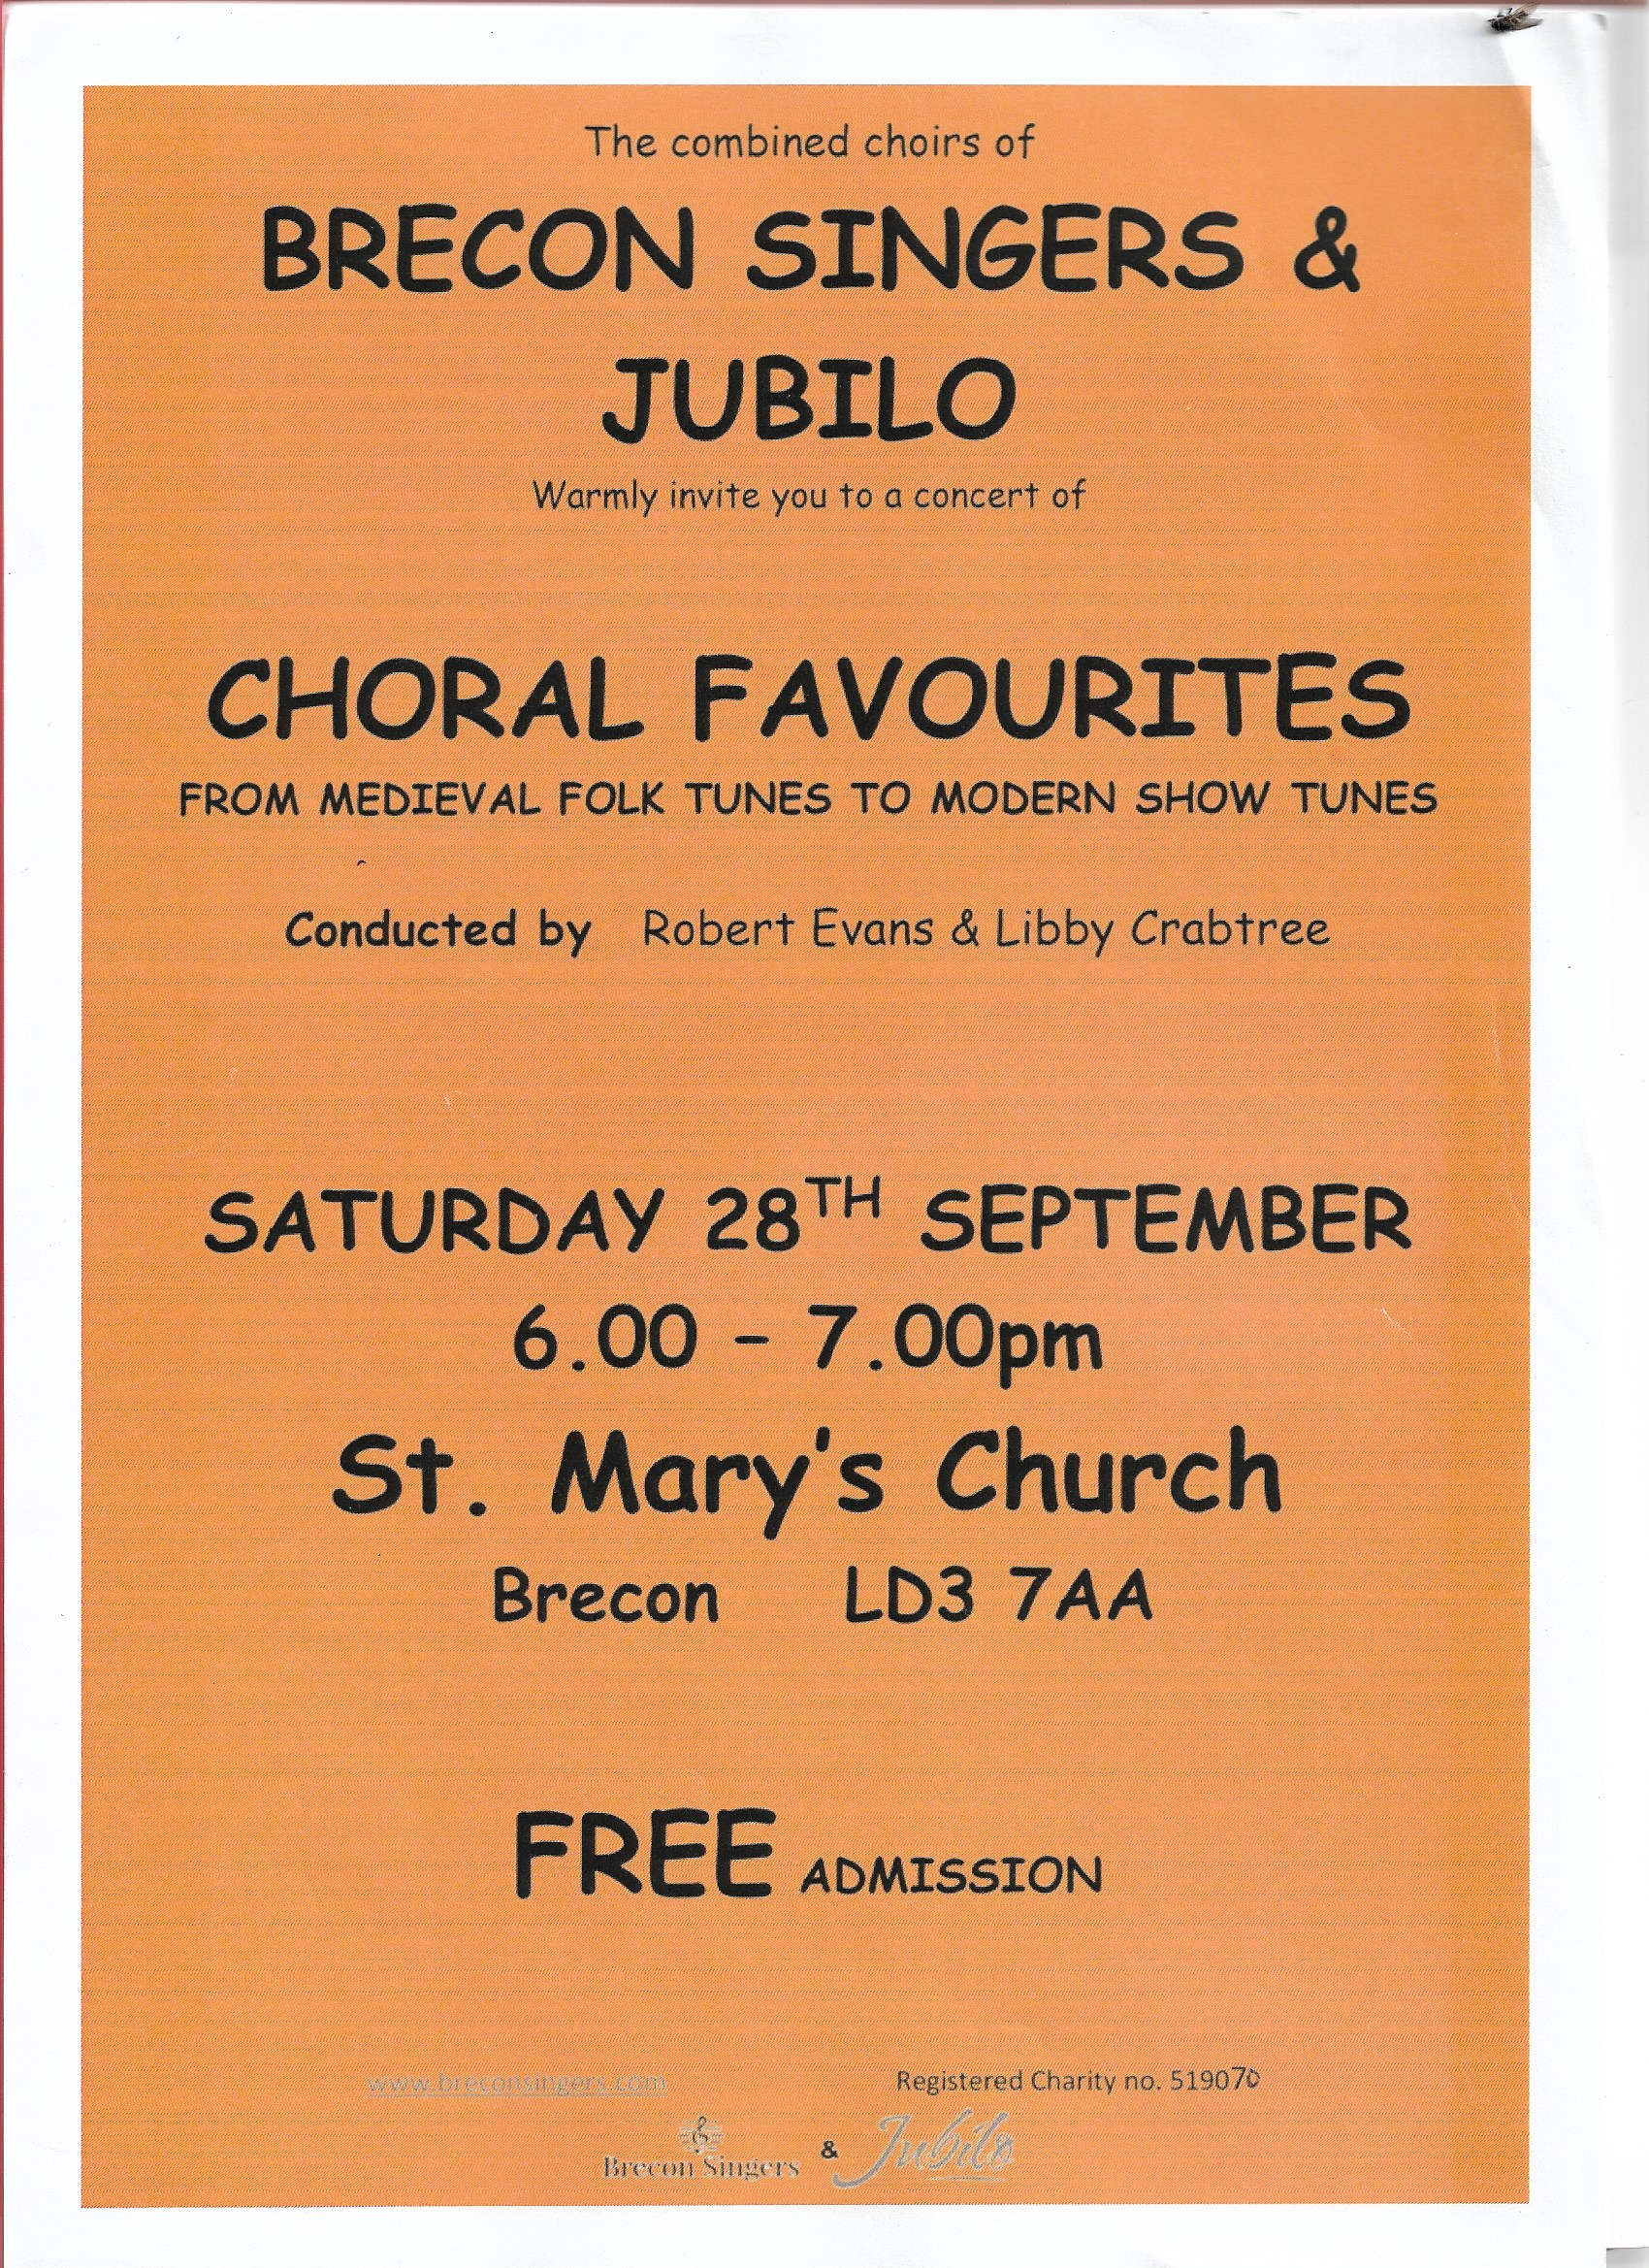 Brecon Singers and Jubilo Choir Edinburgh invite you to join us for a free concert on Saturday 28 September 2019 at St. Mary's Church in Brecon. The music provides entertainment for all…medieval folk tunes, modern show tunes and something for the children! We hope to see you there!!Like us and show your interest on our facebok page. -